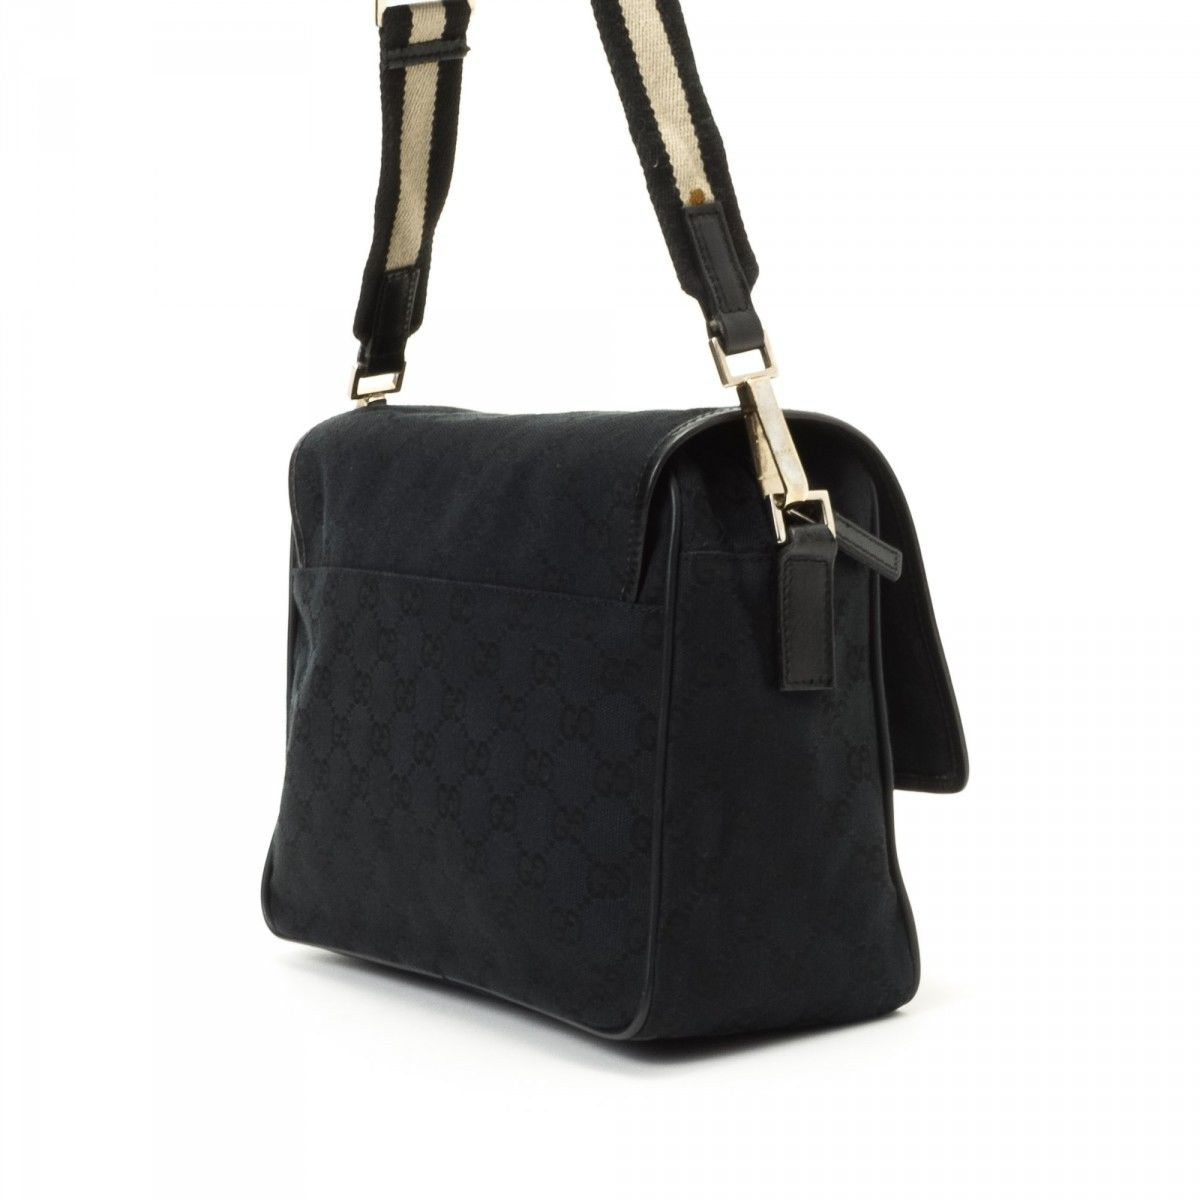 5150ceea470 Gucci Crossbody Bag. LXRandCo guarantees this is an authentic vintage ...